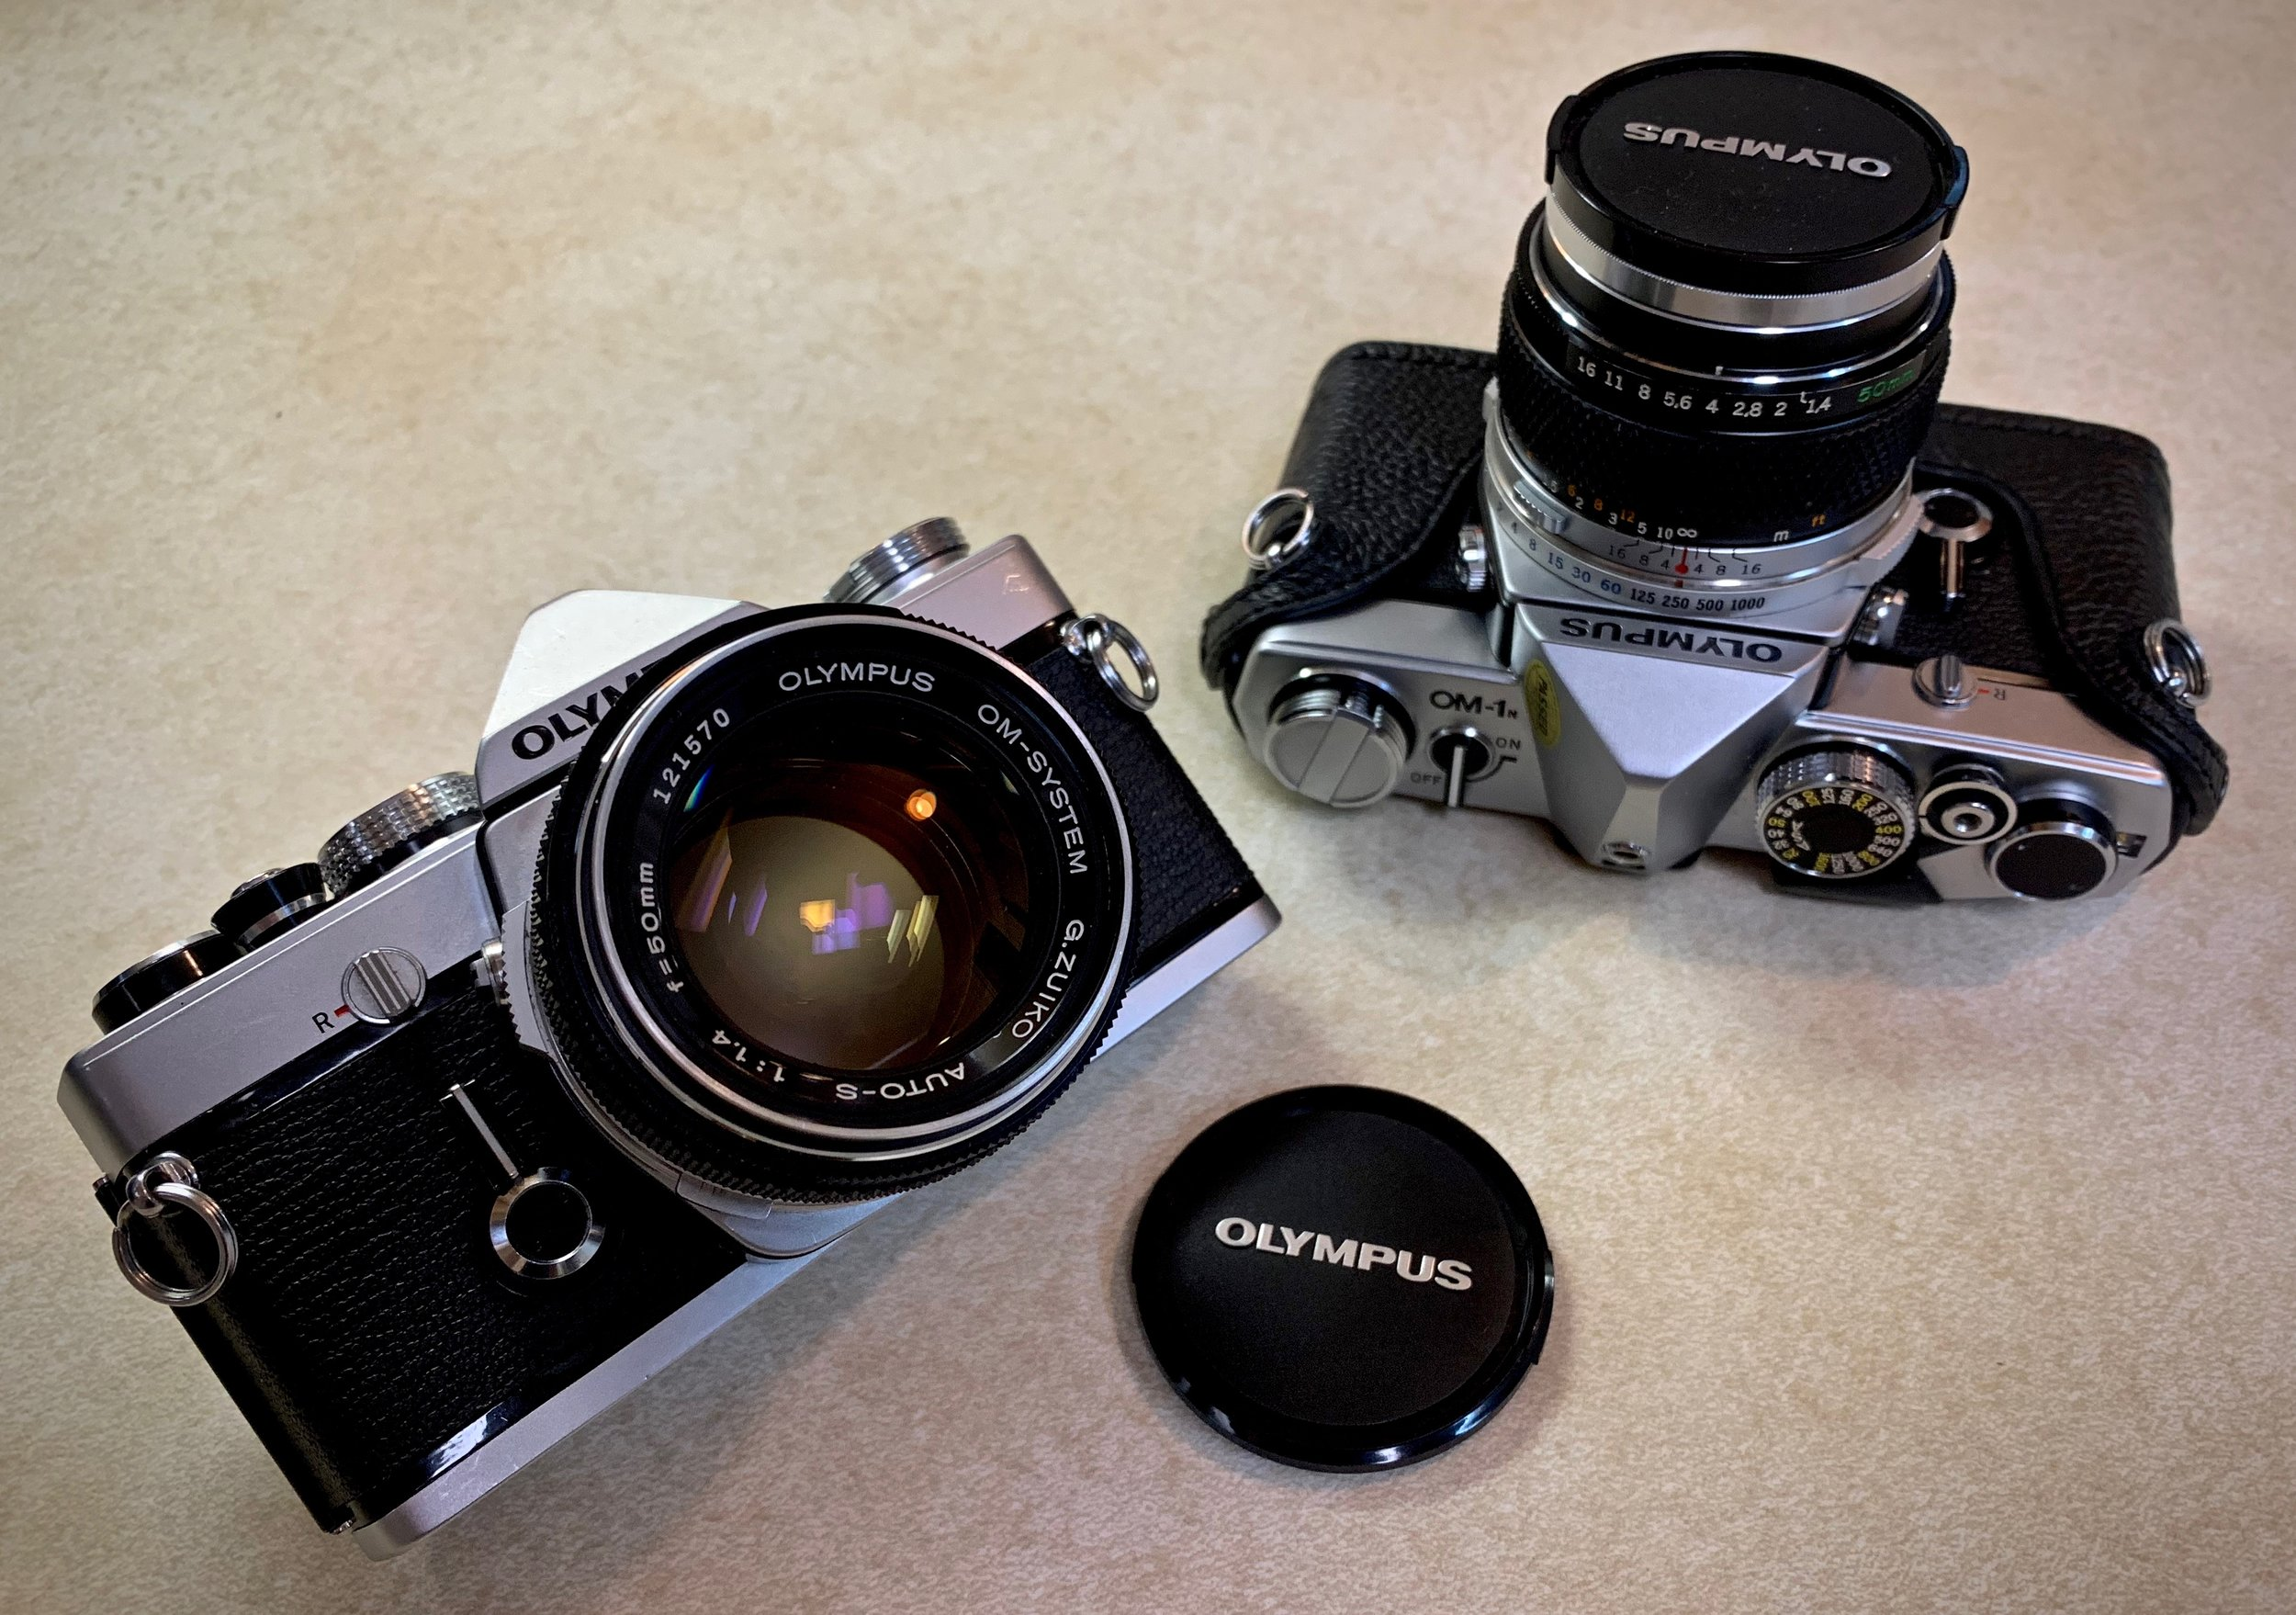 Olympus OM-1 - Olympus turned heads in 1972 when they introduced the little OM-1. Exceptional build quality and amazing Zuiko lenses make the OM-1 and 1979's OM-1n must try mechanical cameras. Affordable adapters make batteries a non issue or have it CLA'd and converted to 1.5v.